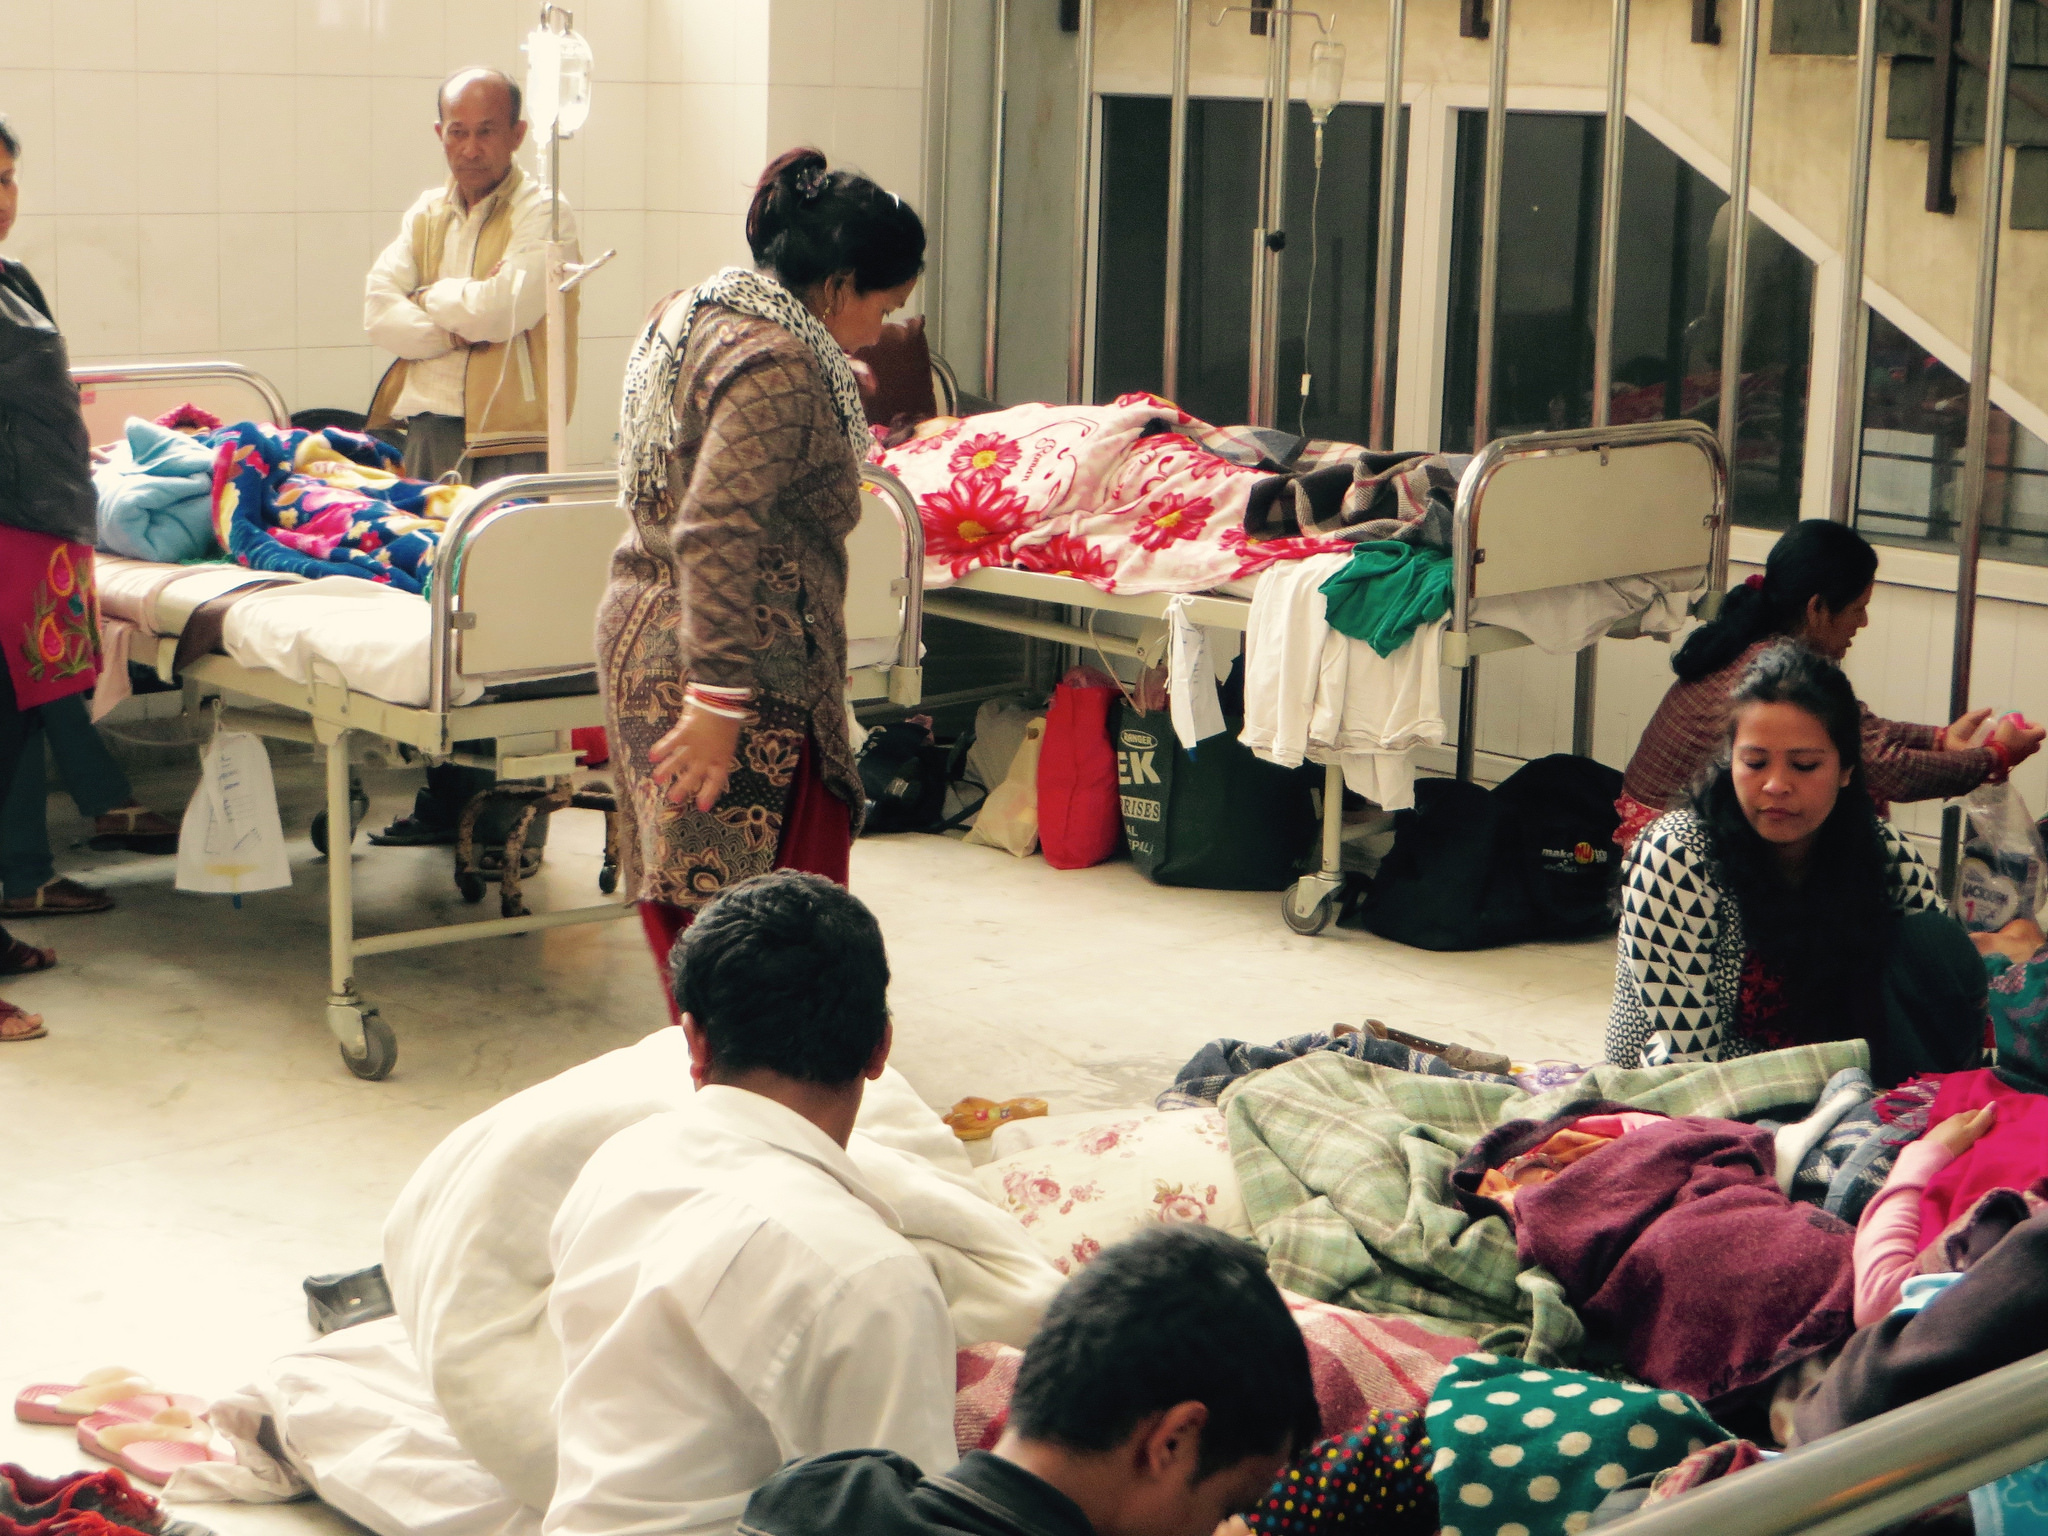 Many patients are being treated in hallways and lobbies at Kathmandu's Patan hospital. Photo by Gabriel Jens